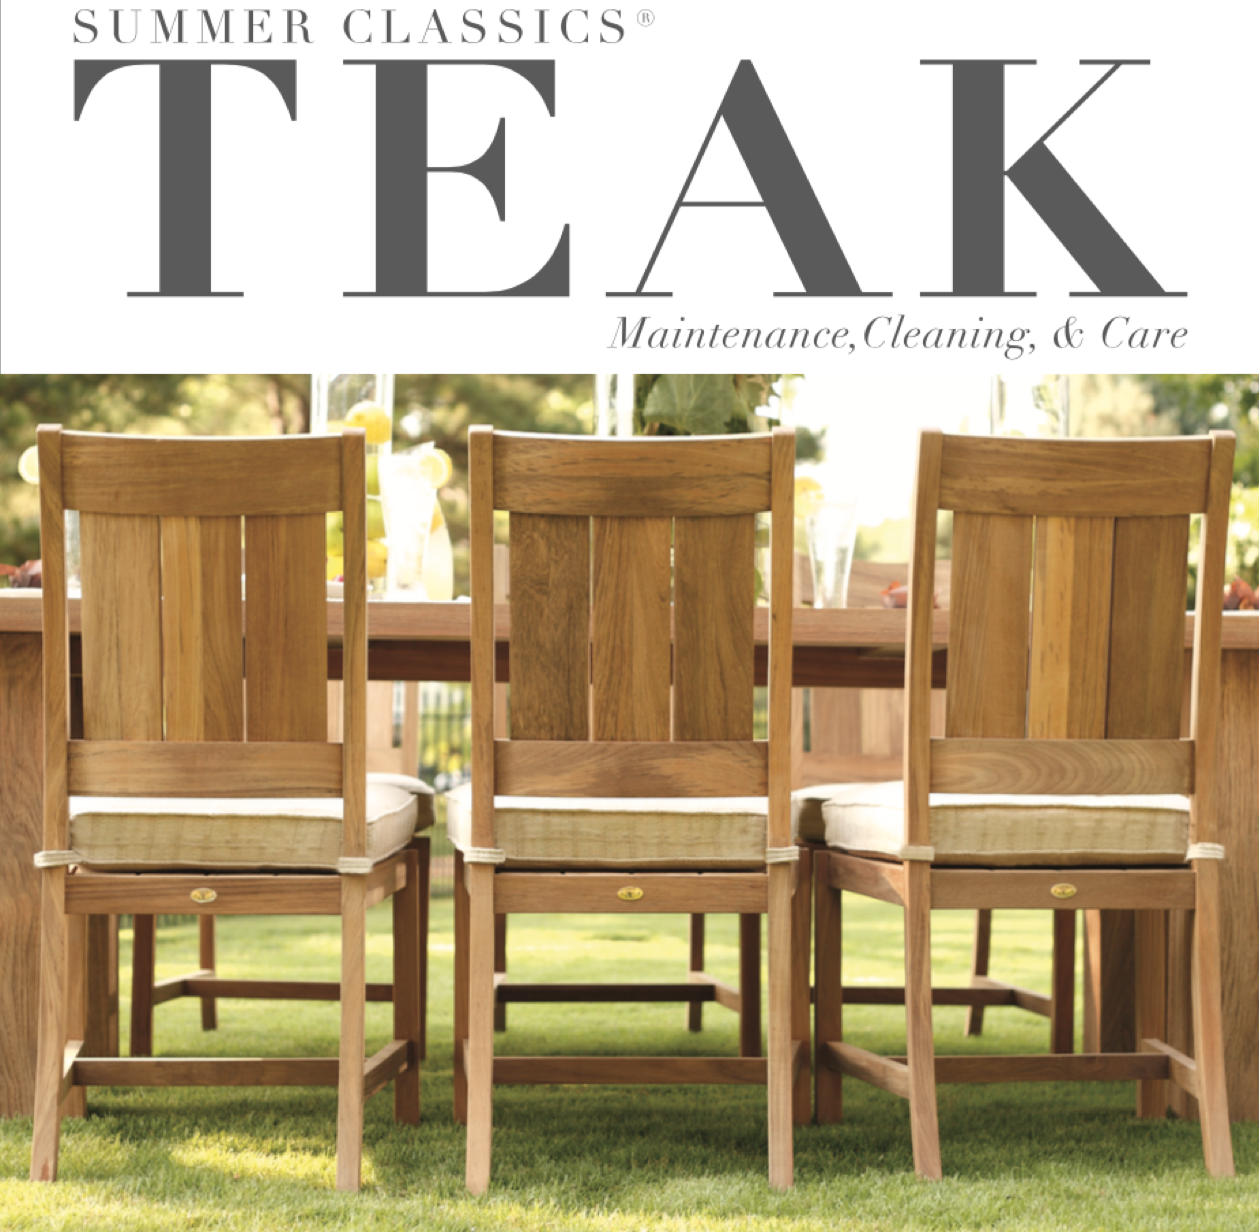 Delicieux Summer Classics Teak Is Made Of The Highest Quality Slow Growth Plantation  Raised Teak. Teak